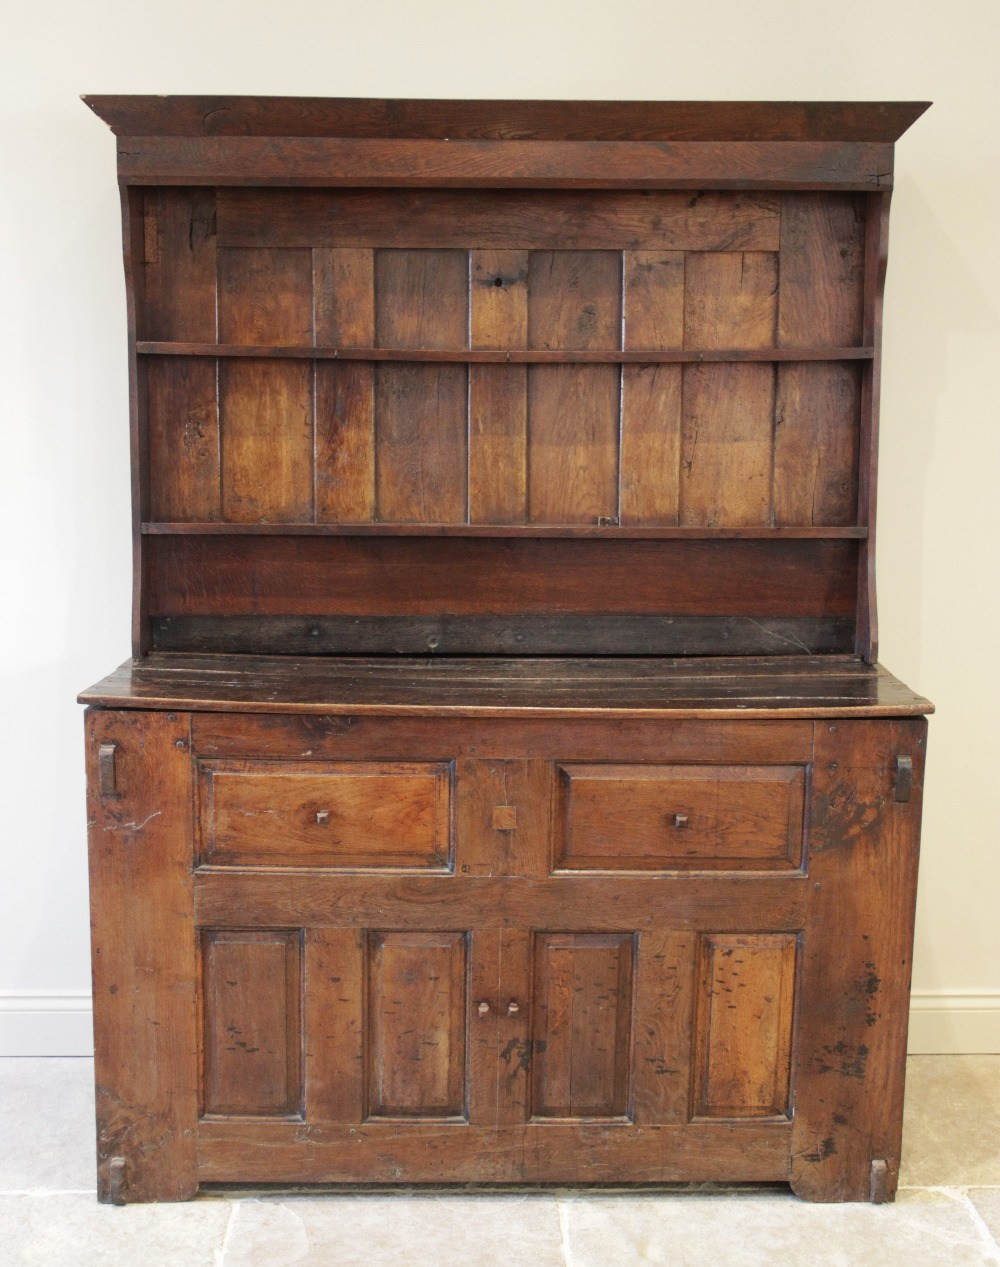 An 18th century and later oak Welsh dresser, the associated rack with a moulded cornice over two